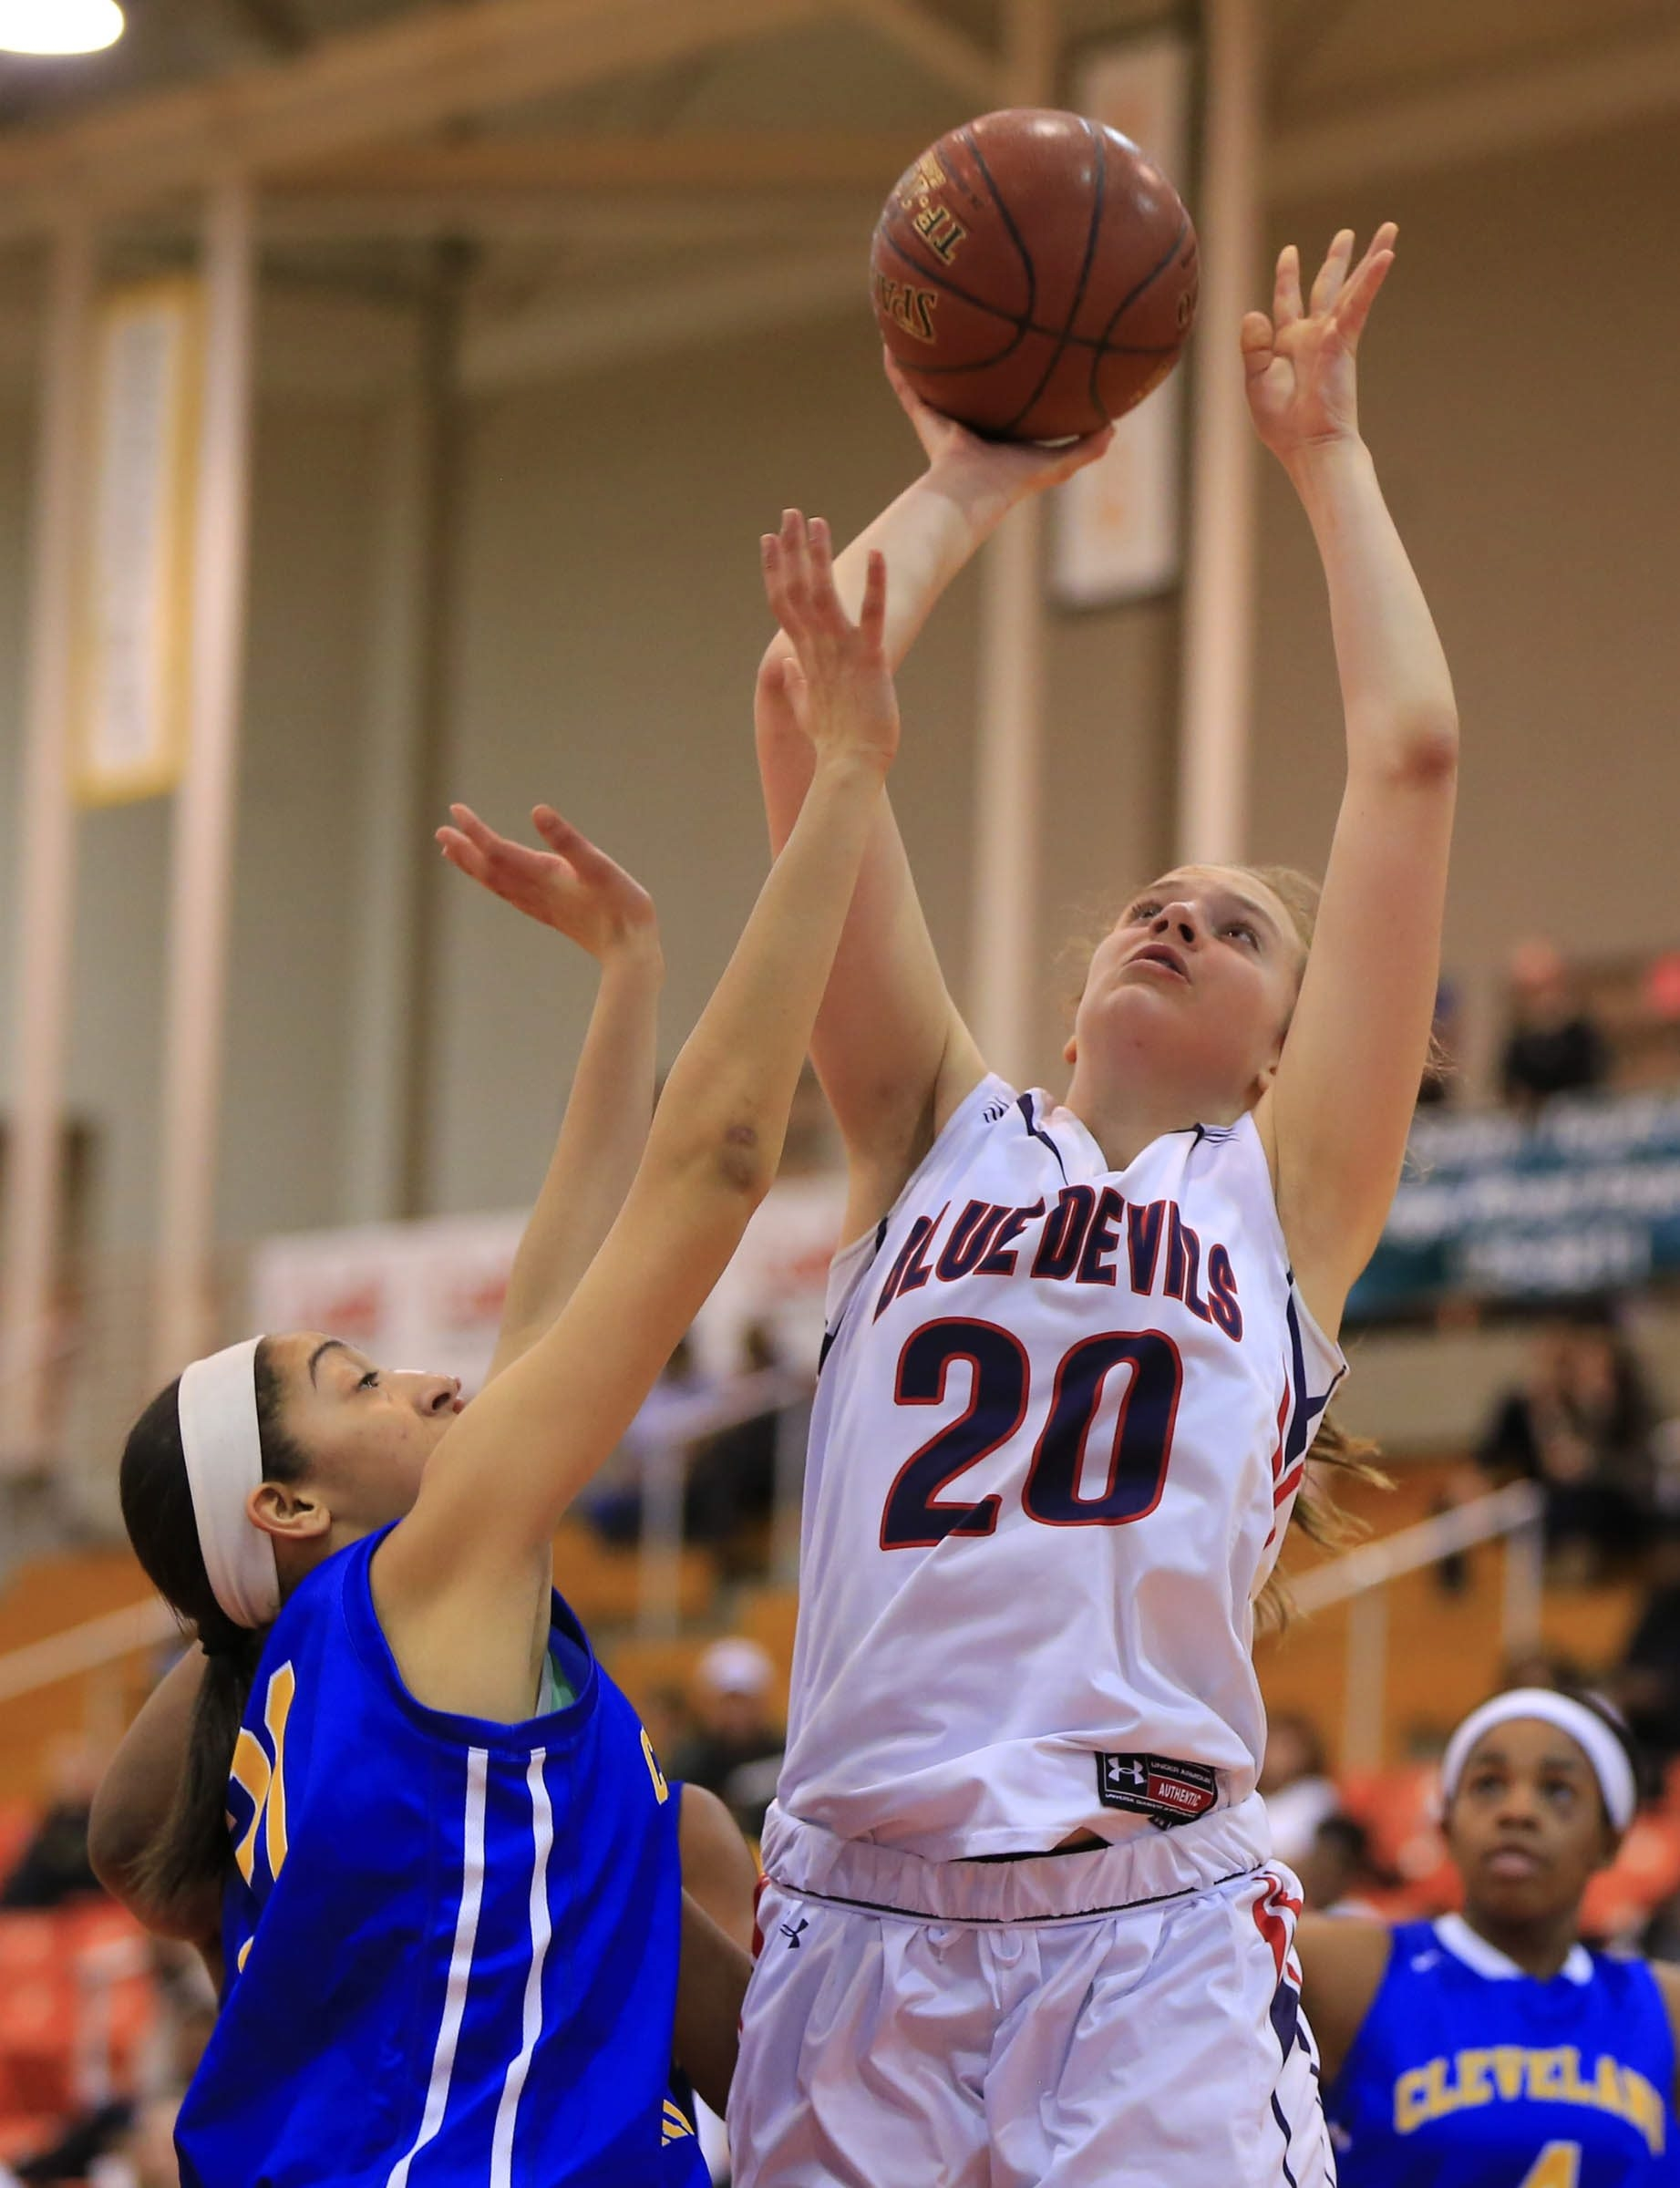 East Aurora's Emma Brinker had 29 points, 16 rebounds and seven blocks to lead the Blue Devils to the Section VI Class B title.